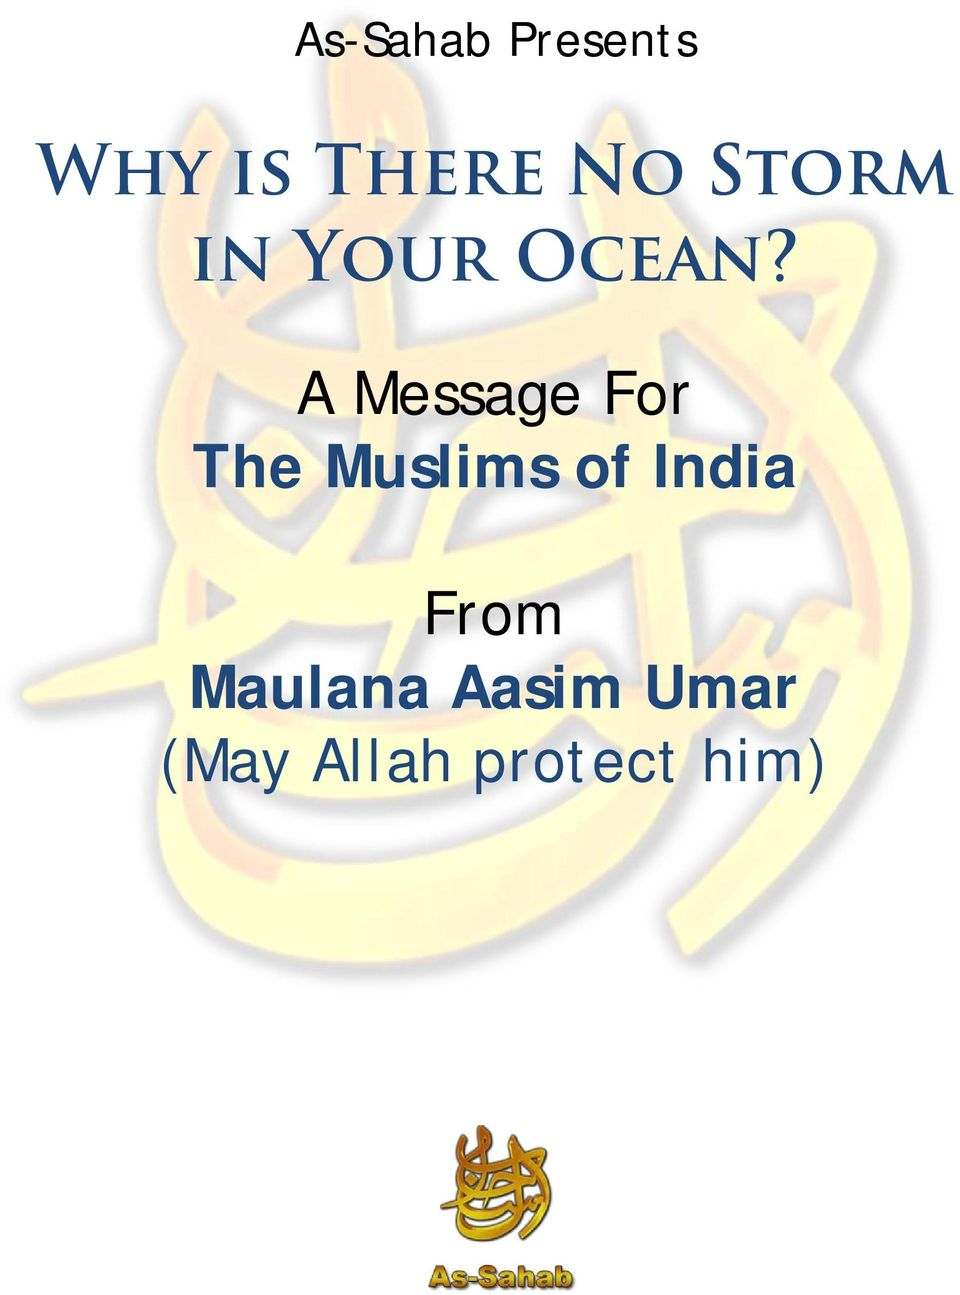 A Message For The Muslims of India